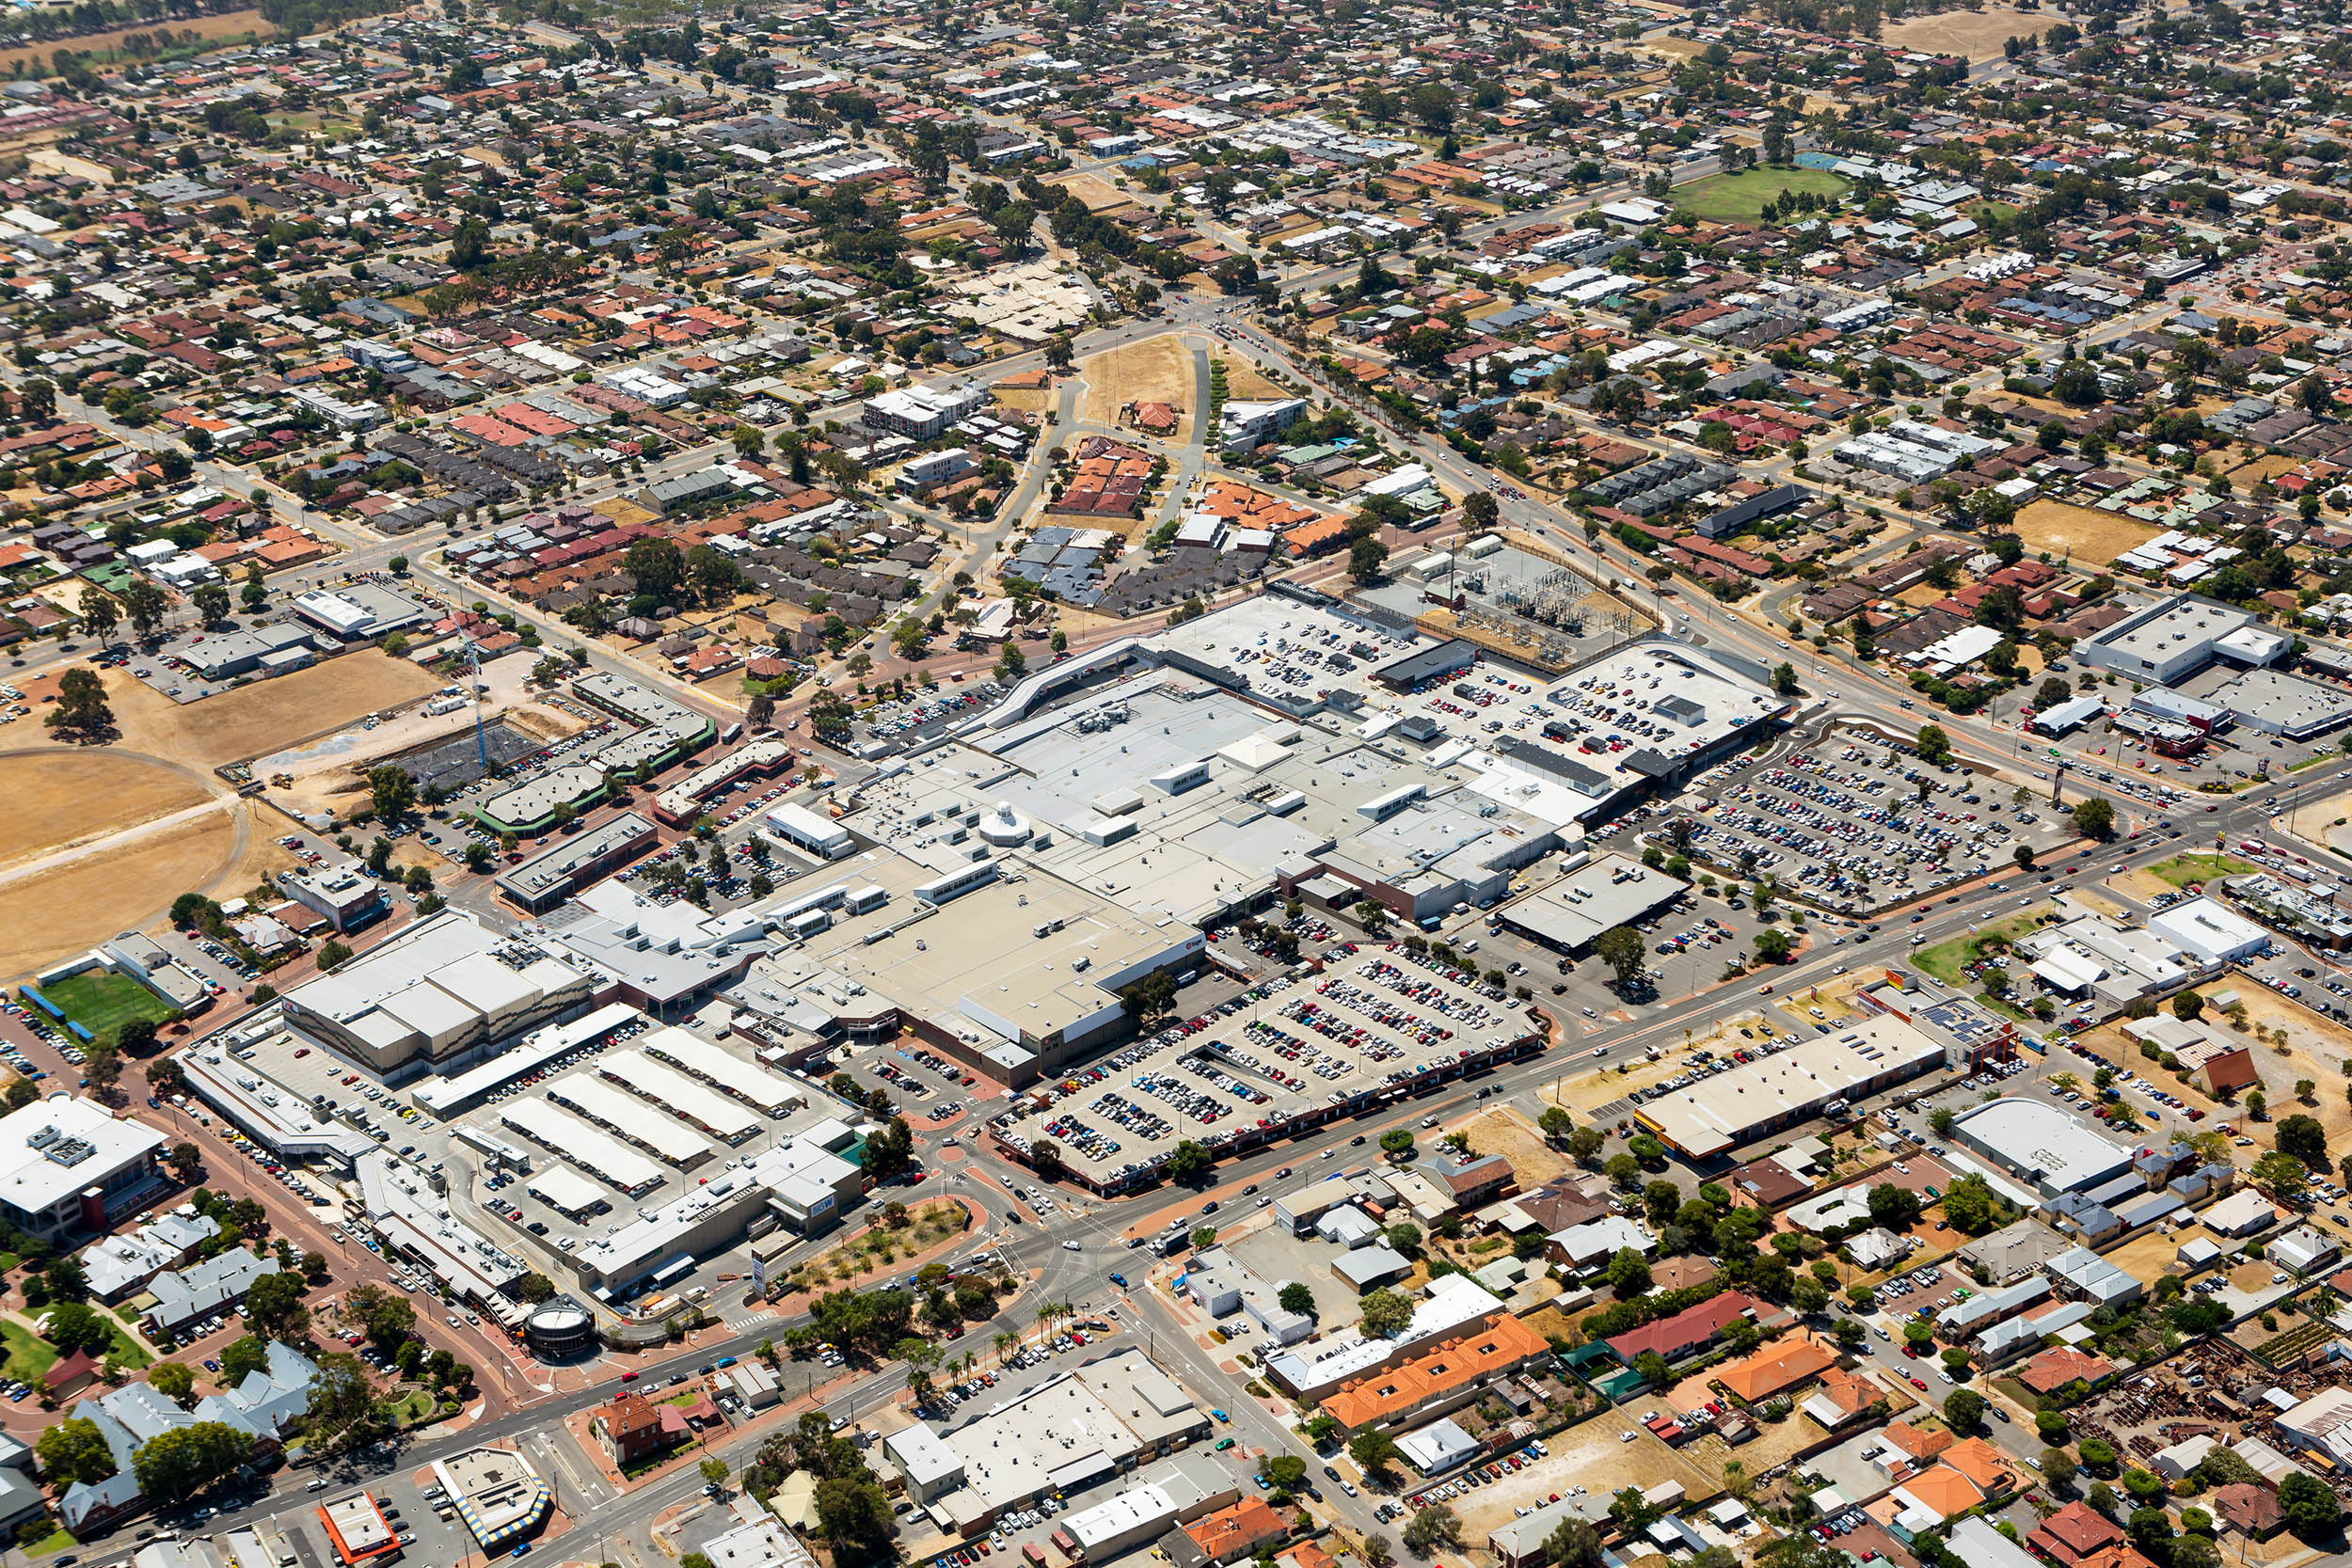 The high number of shopping centres hitting the market comes as a spending slowdown bites key retailers.